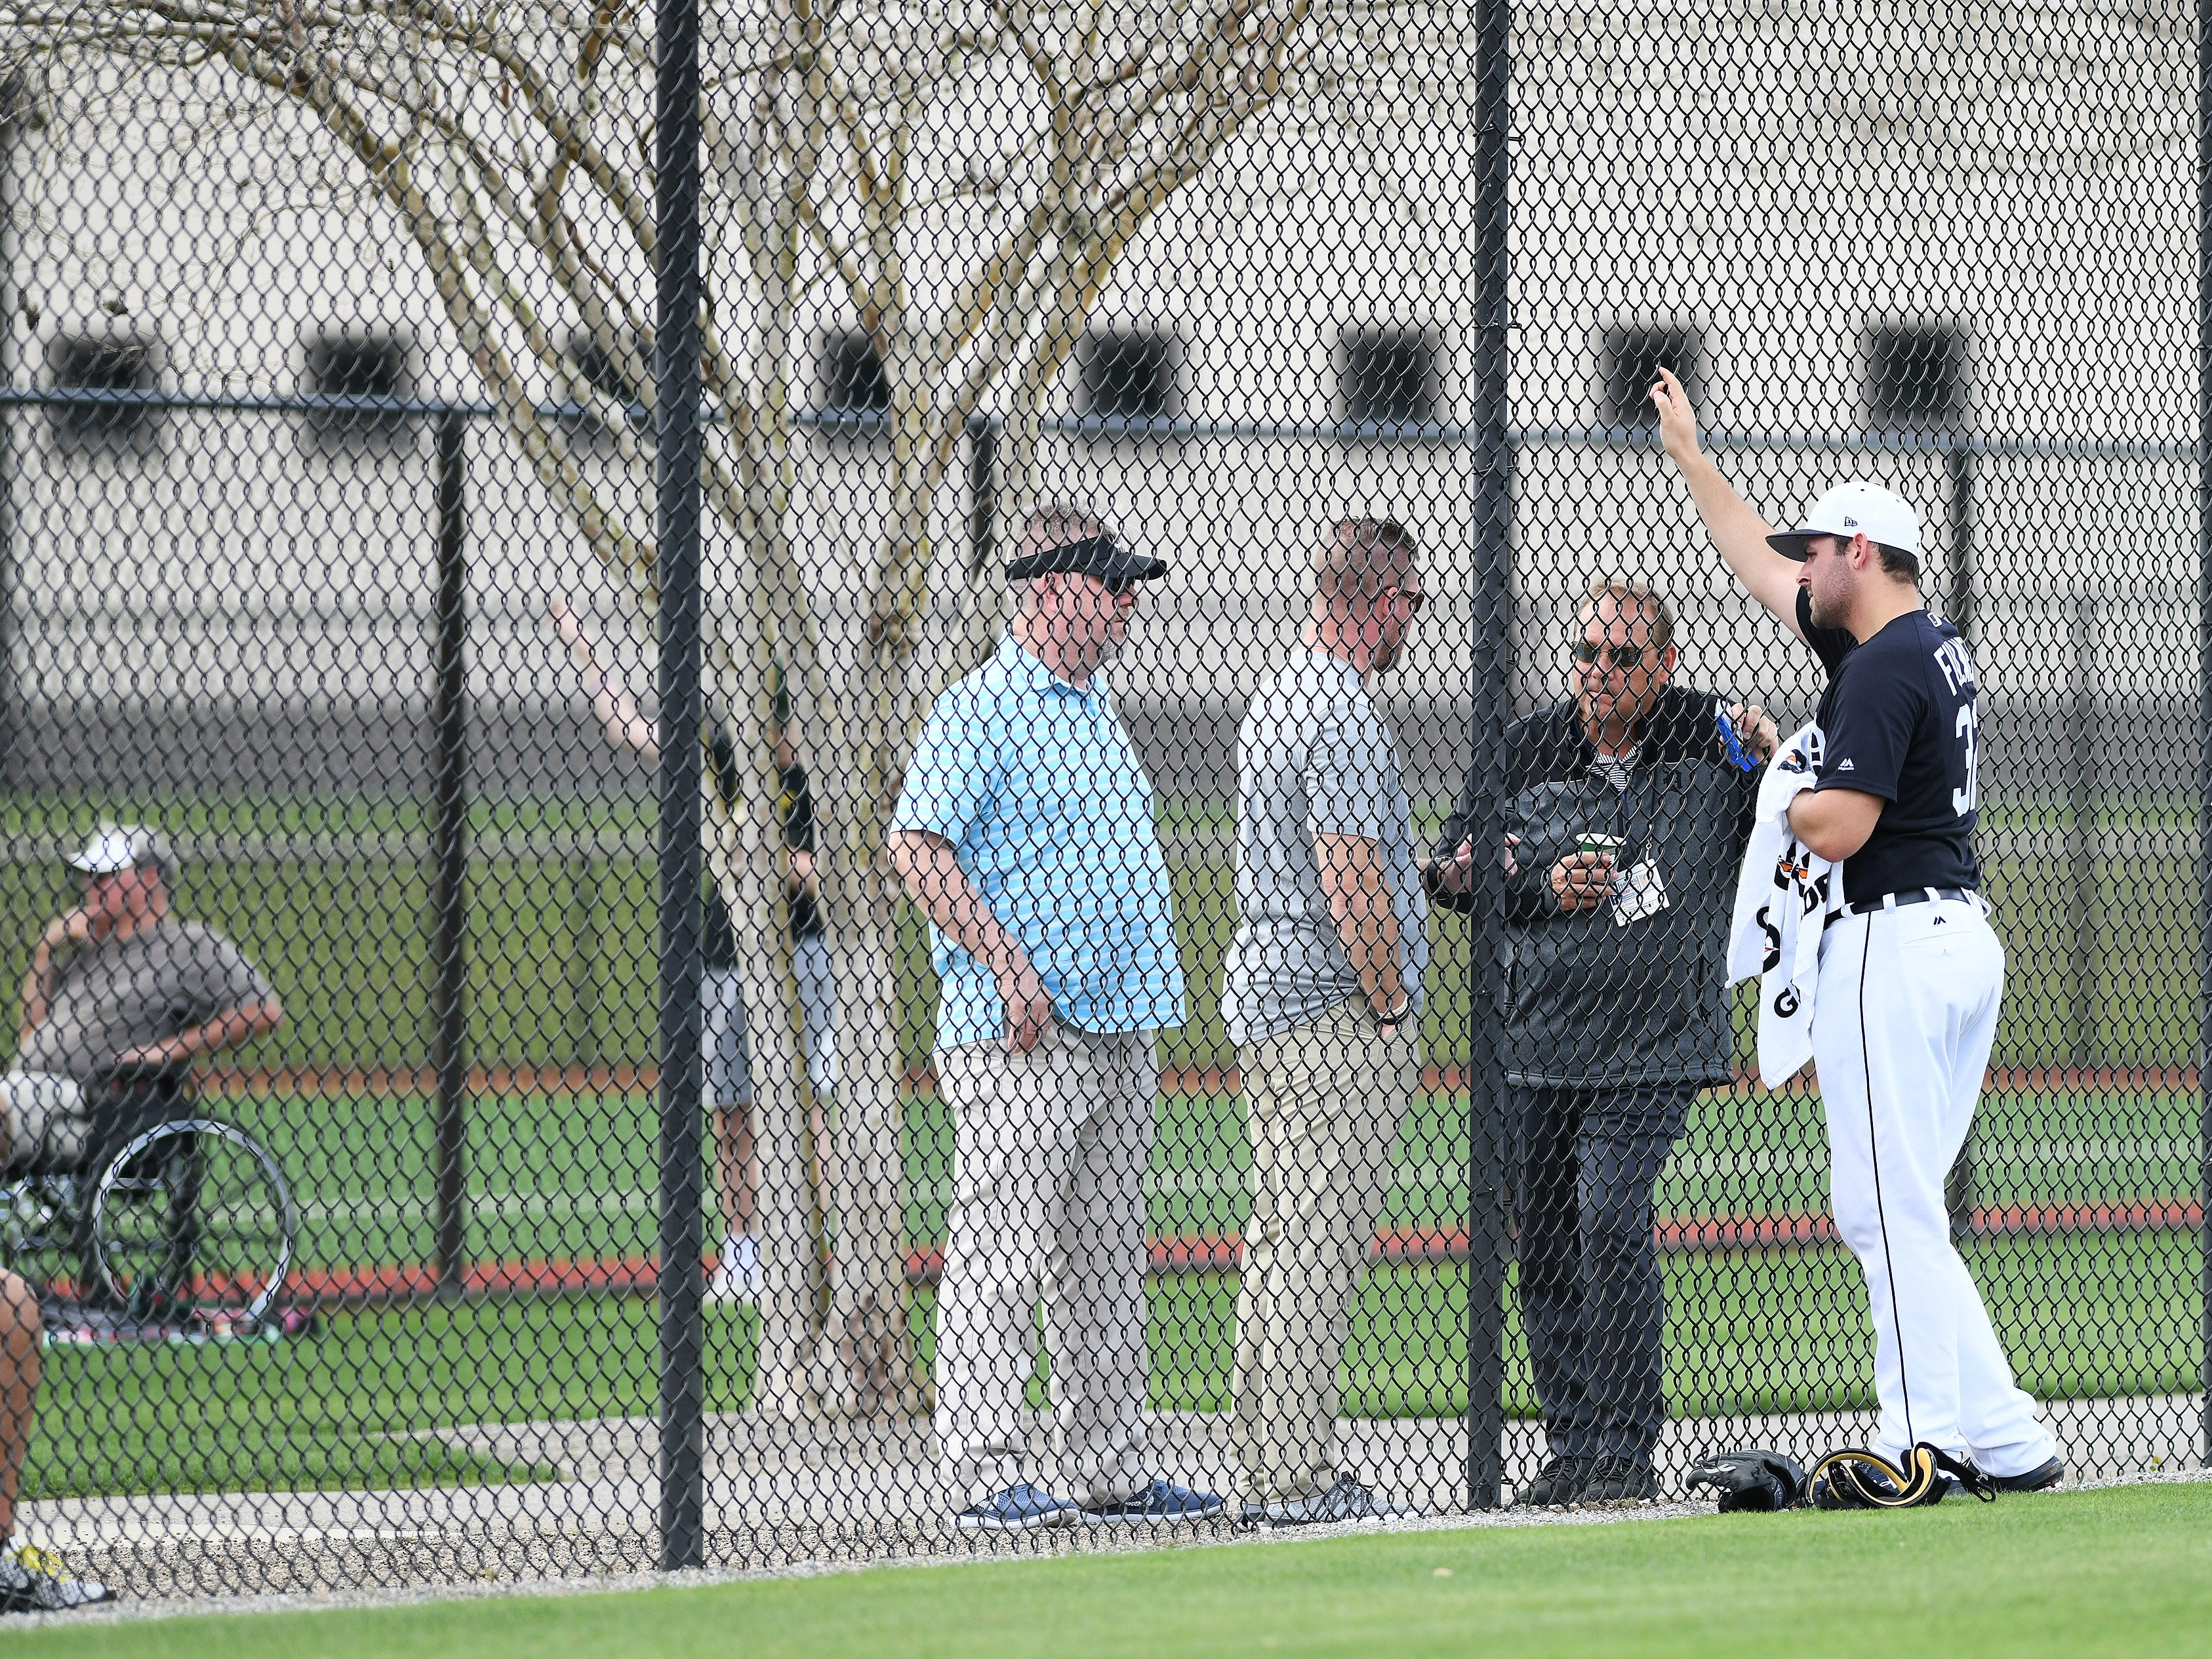 From right, After pitching live batting practice, Tigers pitcher Michael Fulmer talks with Tigers vice president, assistant general manager David Chadd.